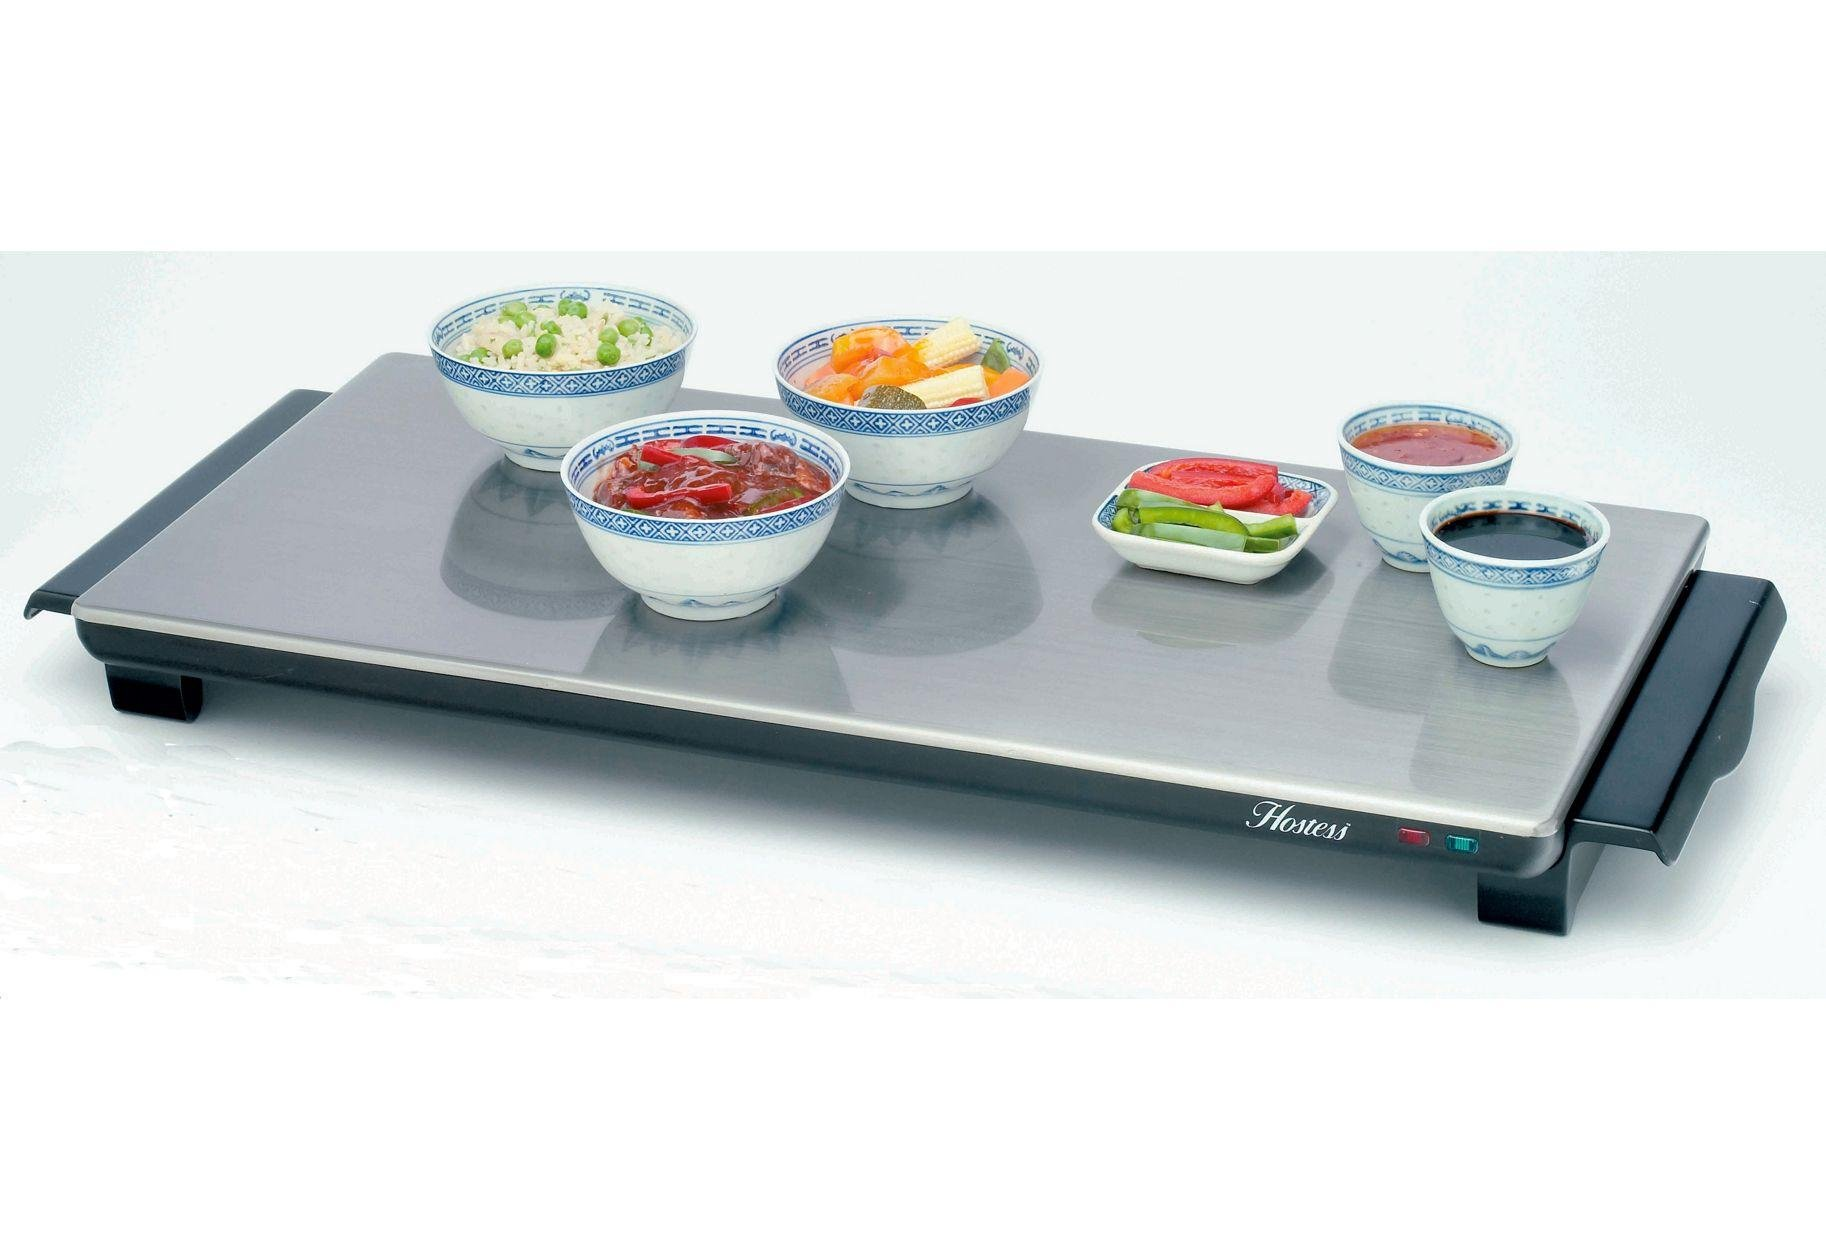 Hostess HT6030 Hot Tray - Large